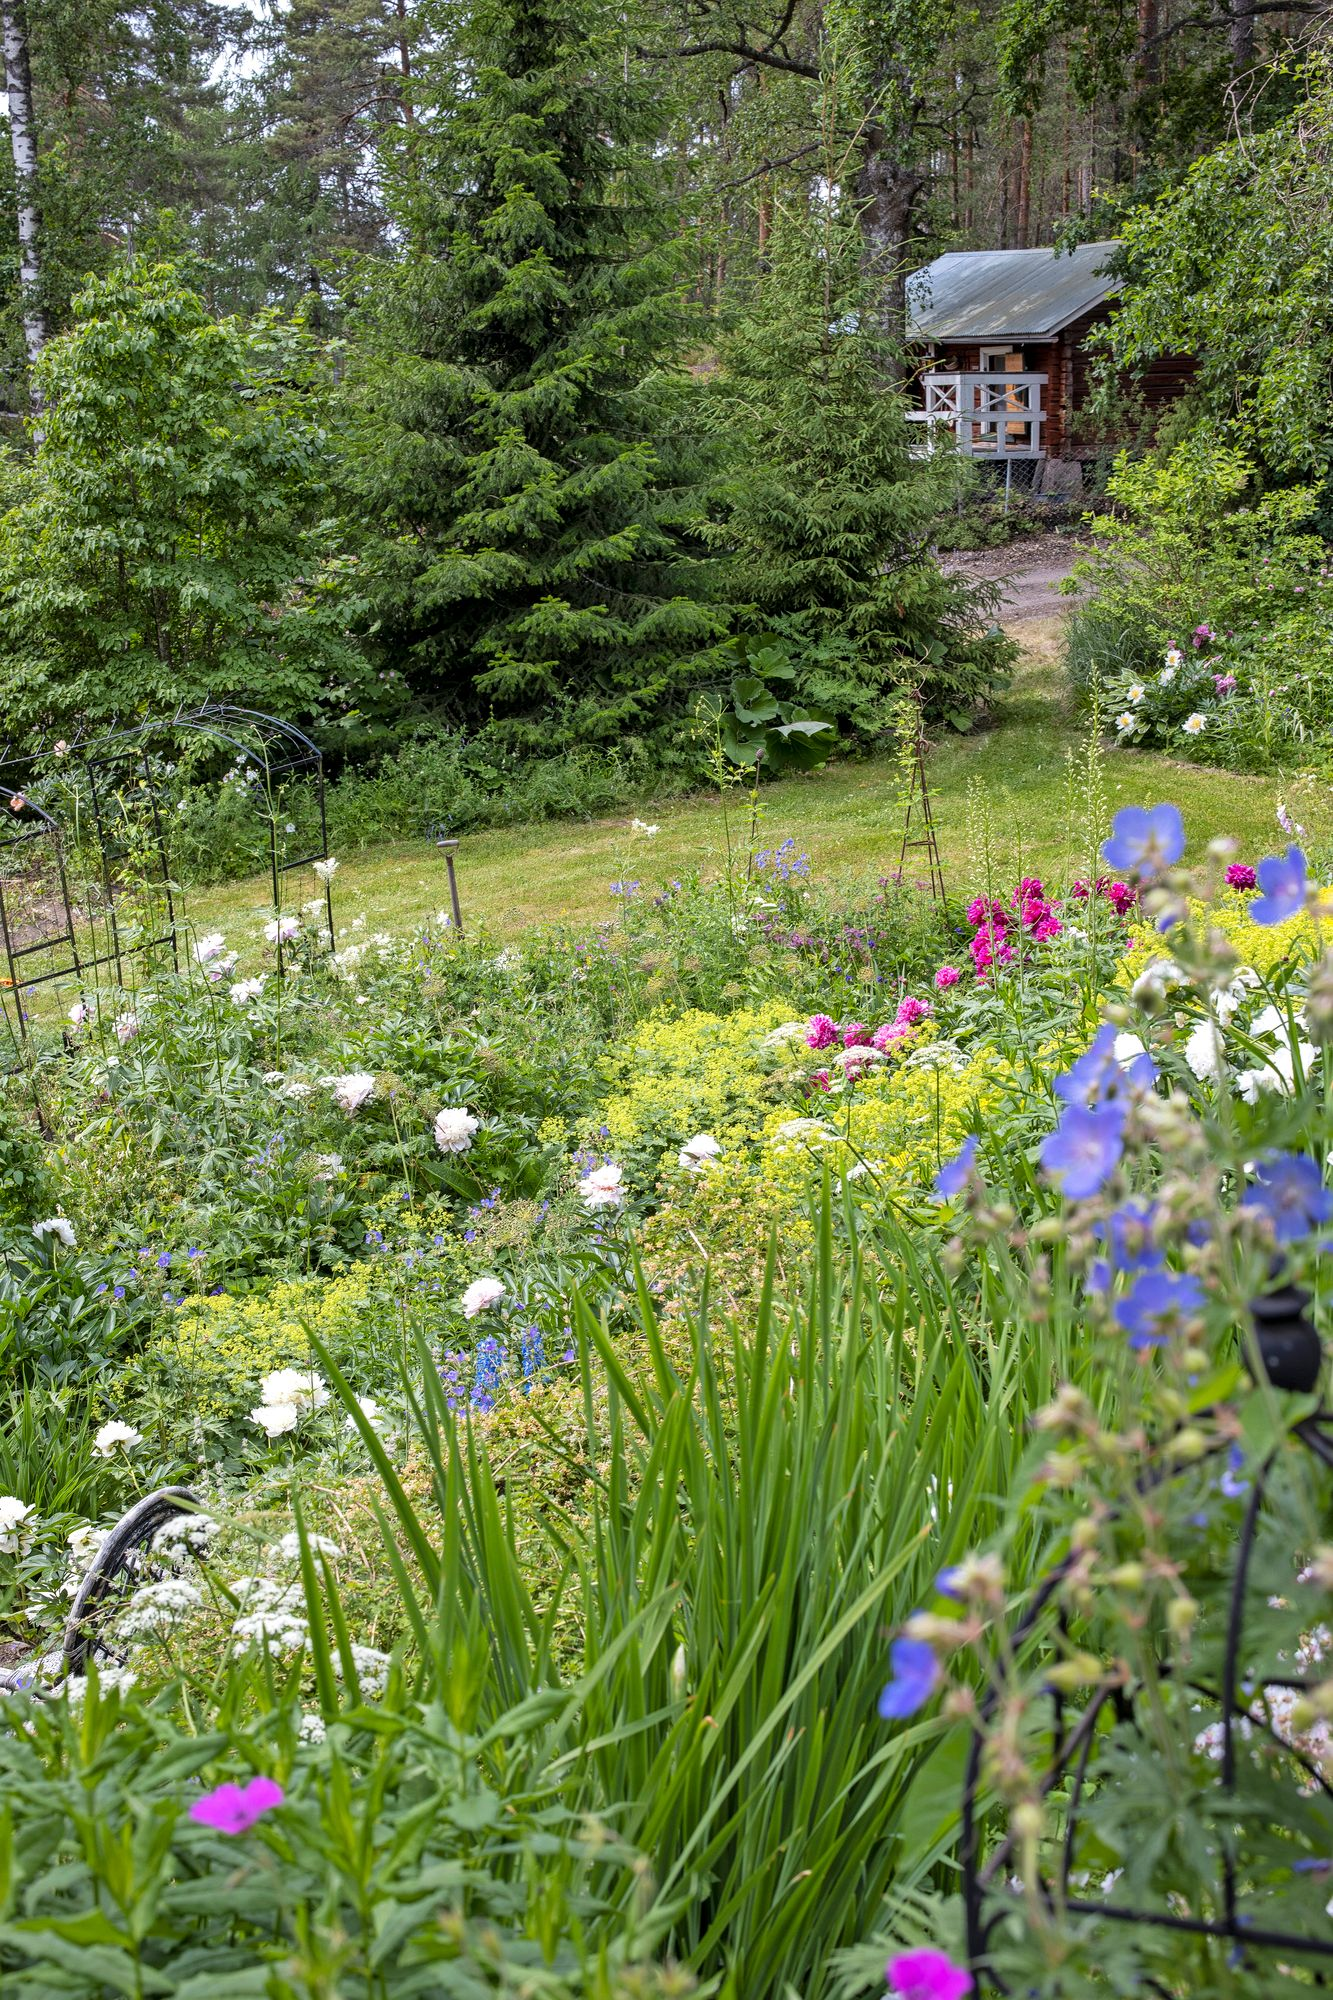 Full-bodied Chinese peonies and irises that bloom profusely throughout the summer are the basic plants of the cottage garden style.